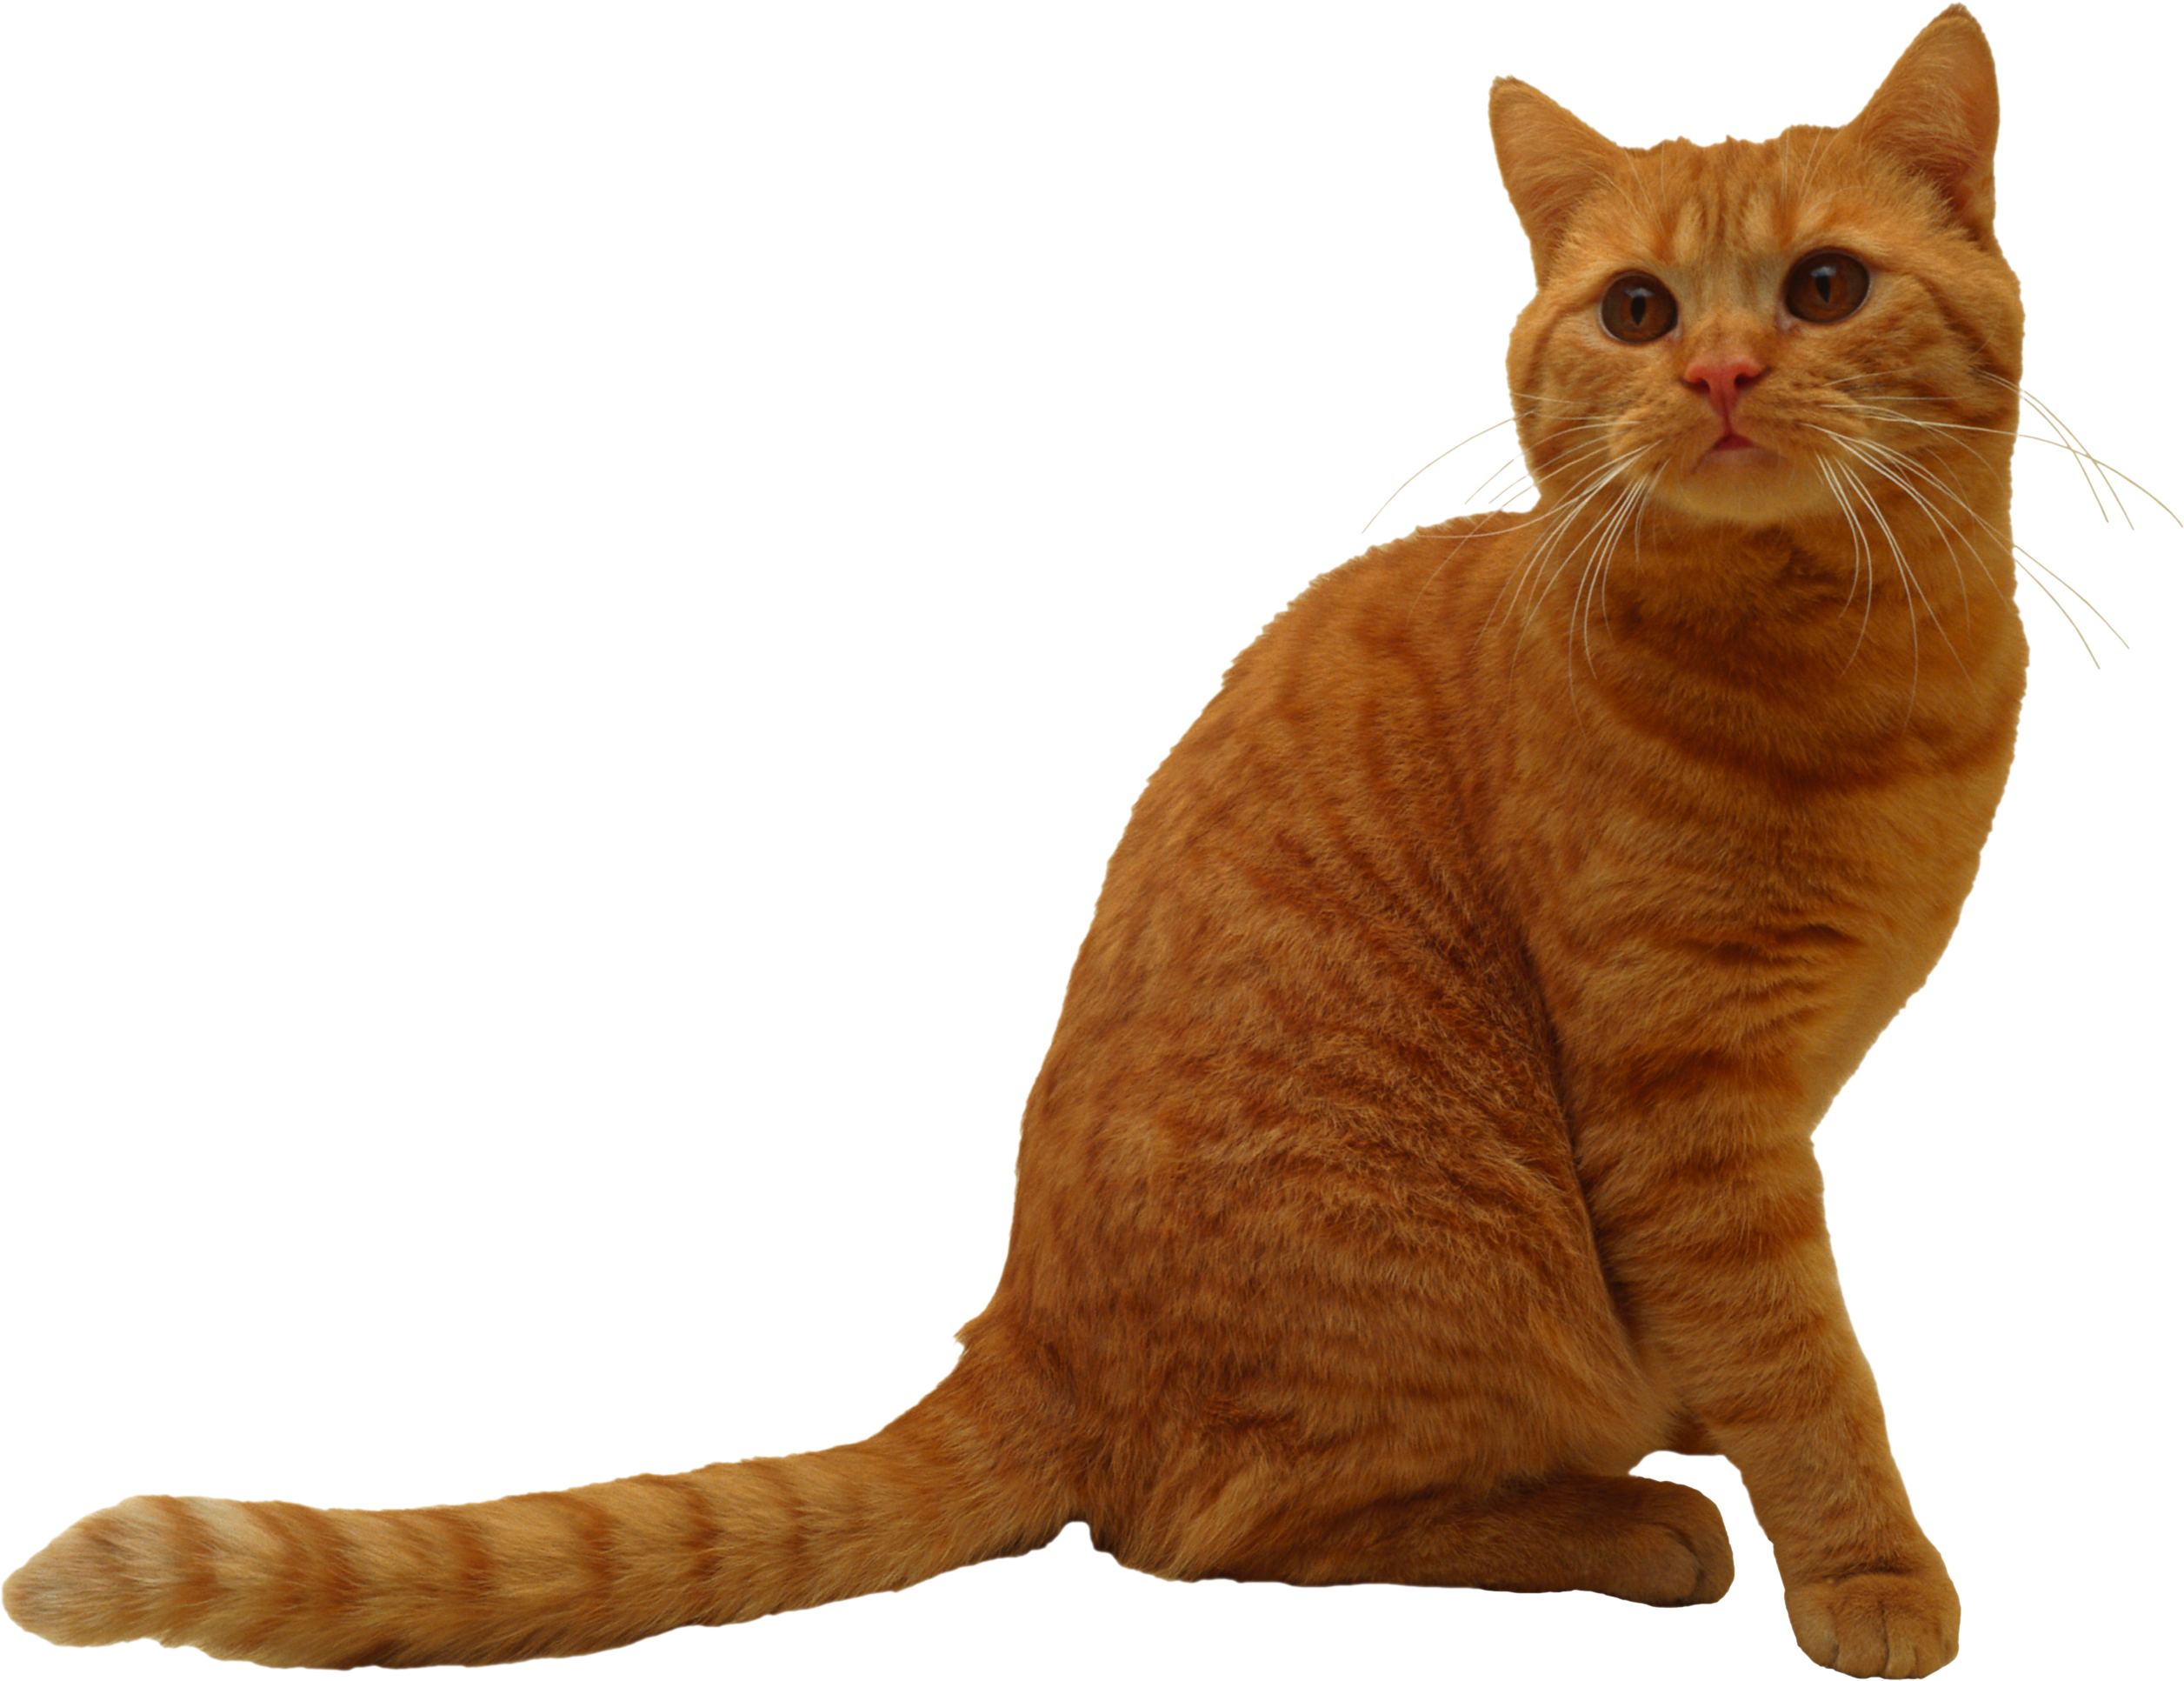 Download This Cat Clip Art Cat Png Picture Free Download Picture Kitten Cat Animal Pet Kitten Png Image And Vector Psd C Cats Kitten Free Download Pictures